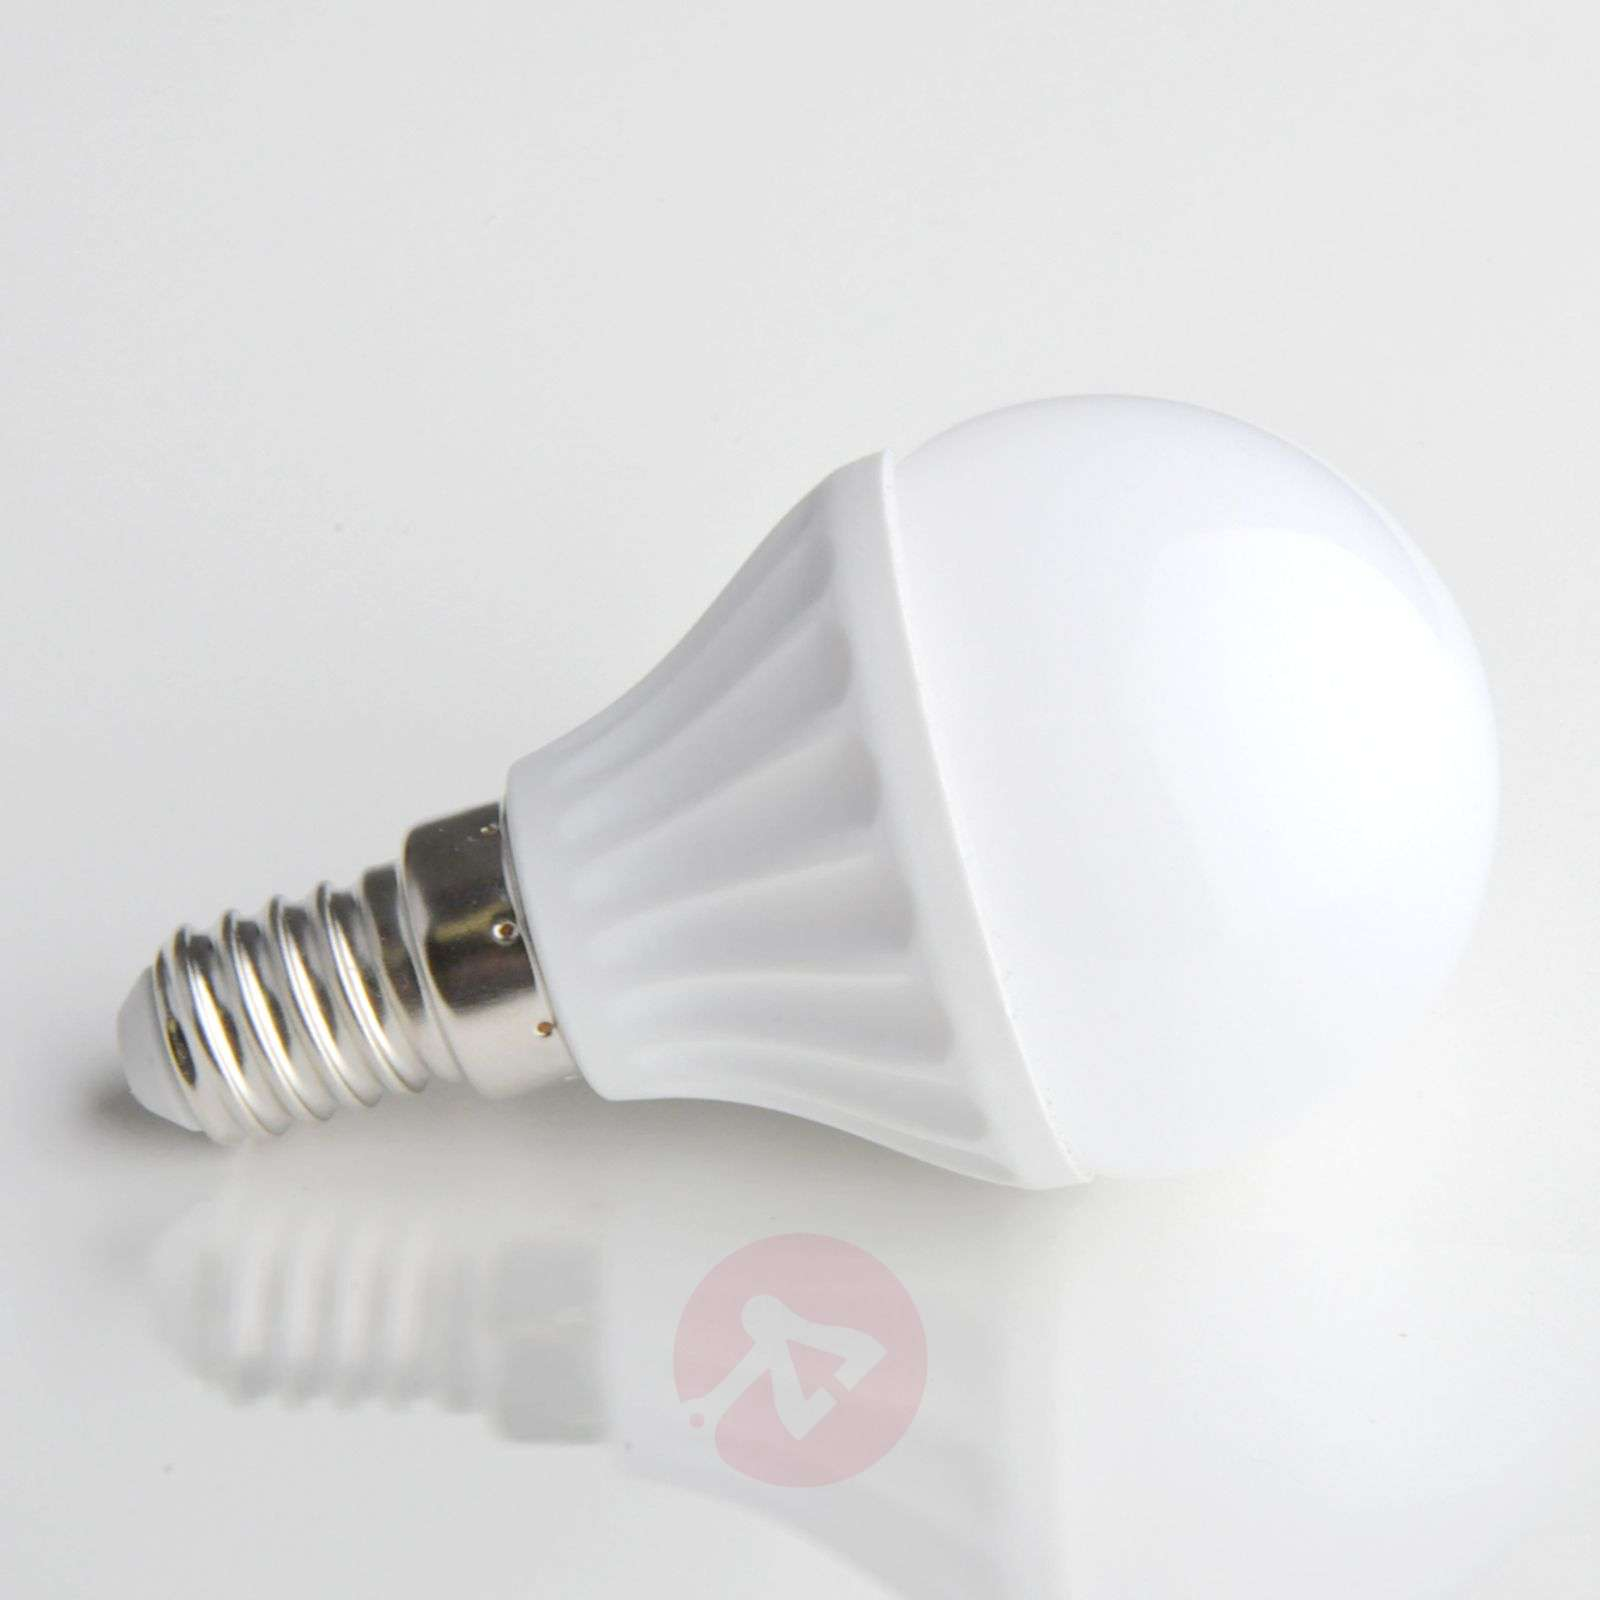 E14 4W 830 LED light in a tear form matte-9620007-05